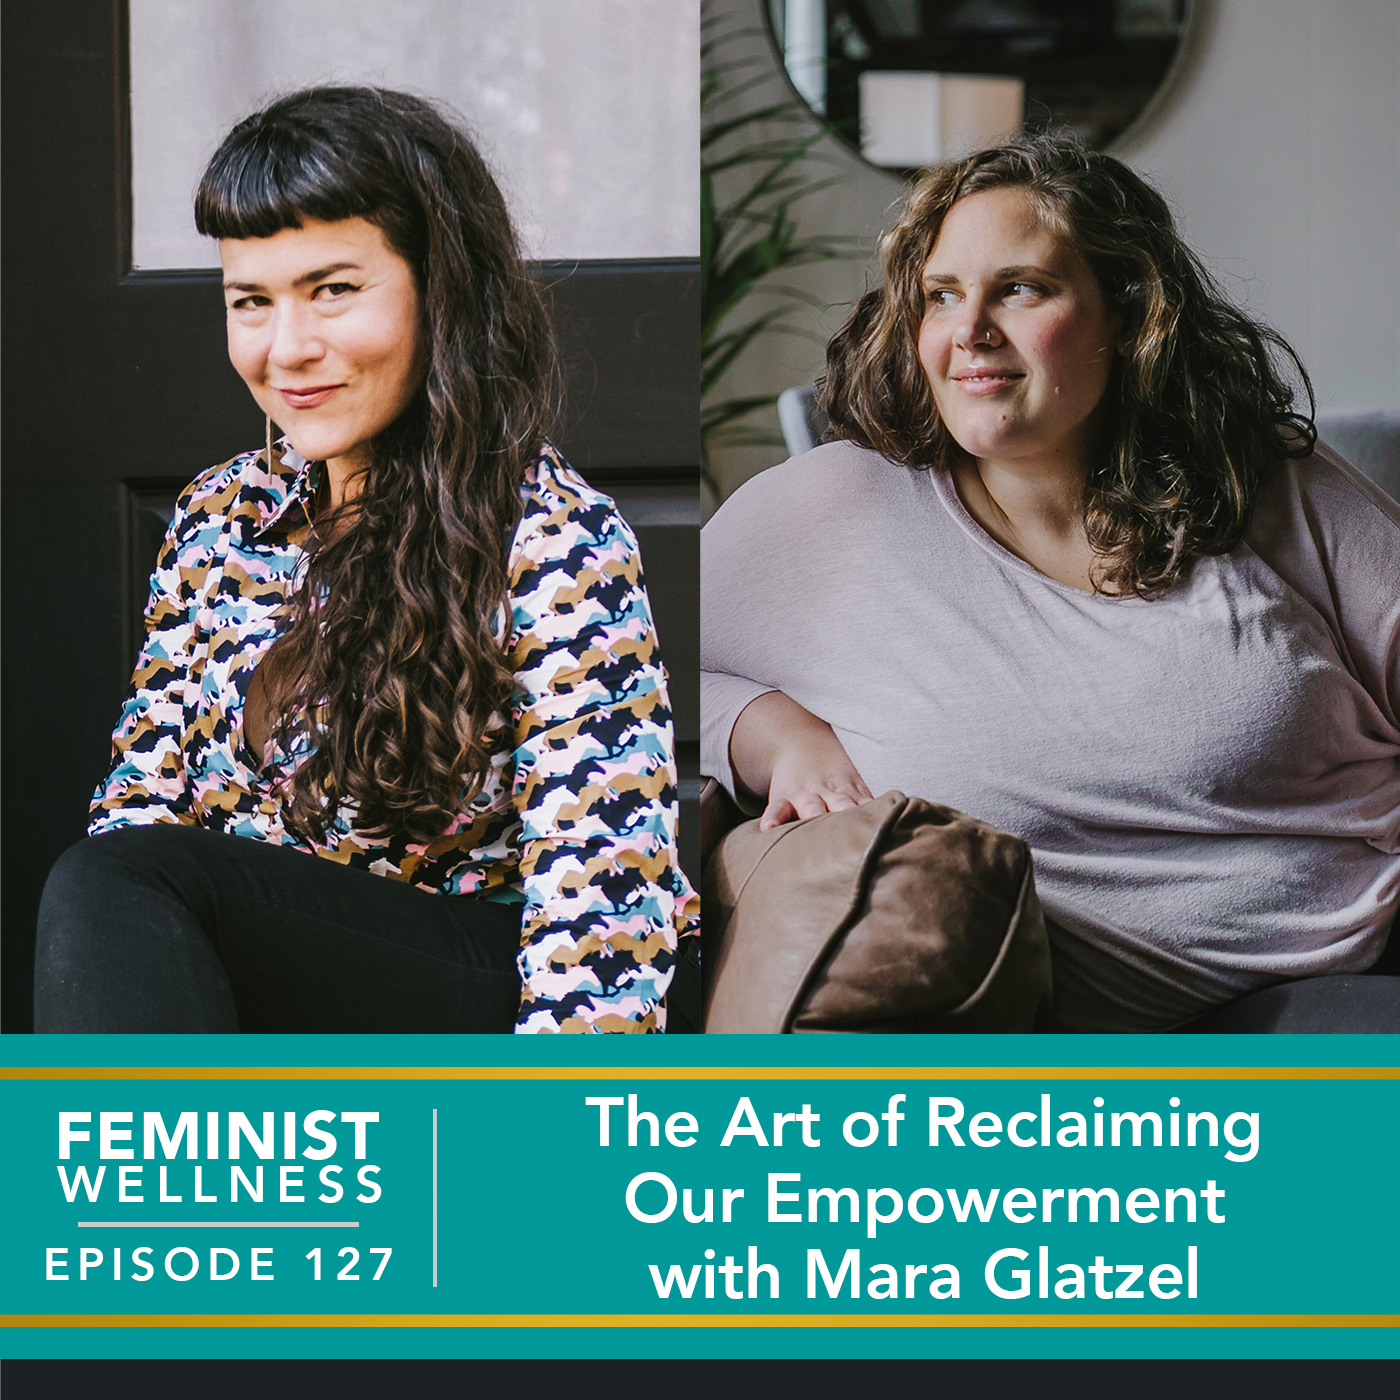 Feminist Wellness with Victoria Albina | The Art of Reclaiming Our Empowerment with Mara Glatzel